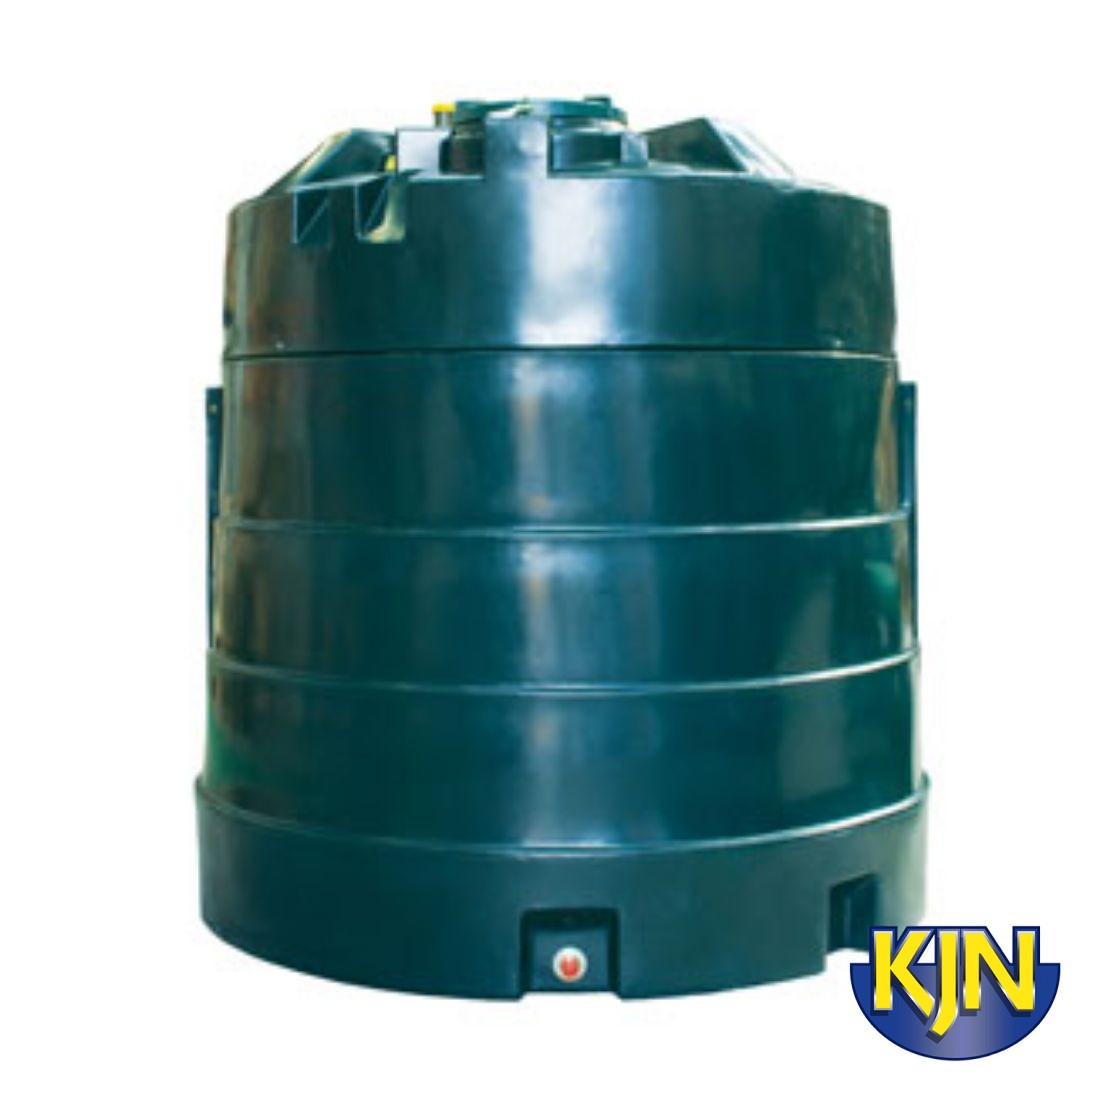 Titan Ecosafe Bunded Oil Tank 3500 Litre Bottom Or Top Outlet